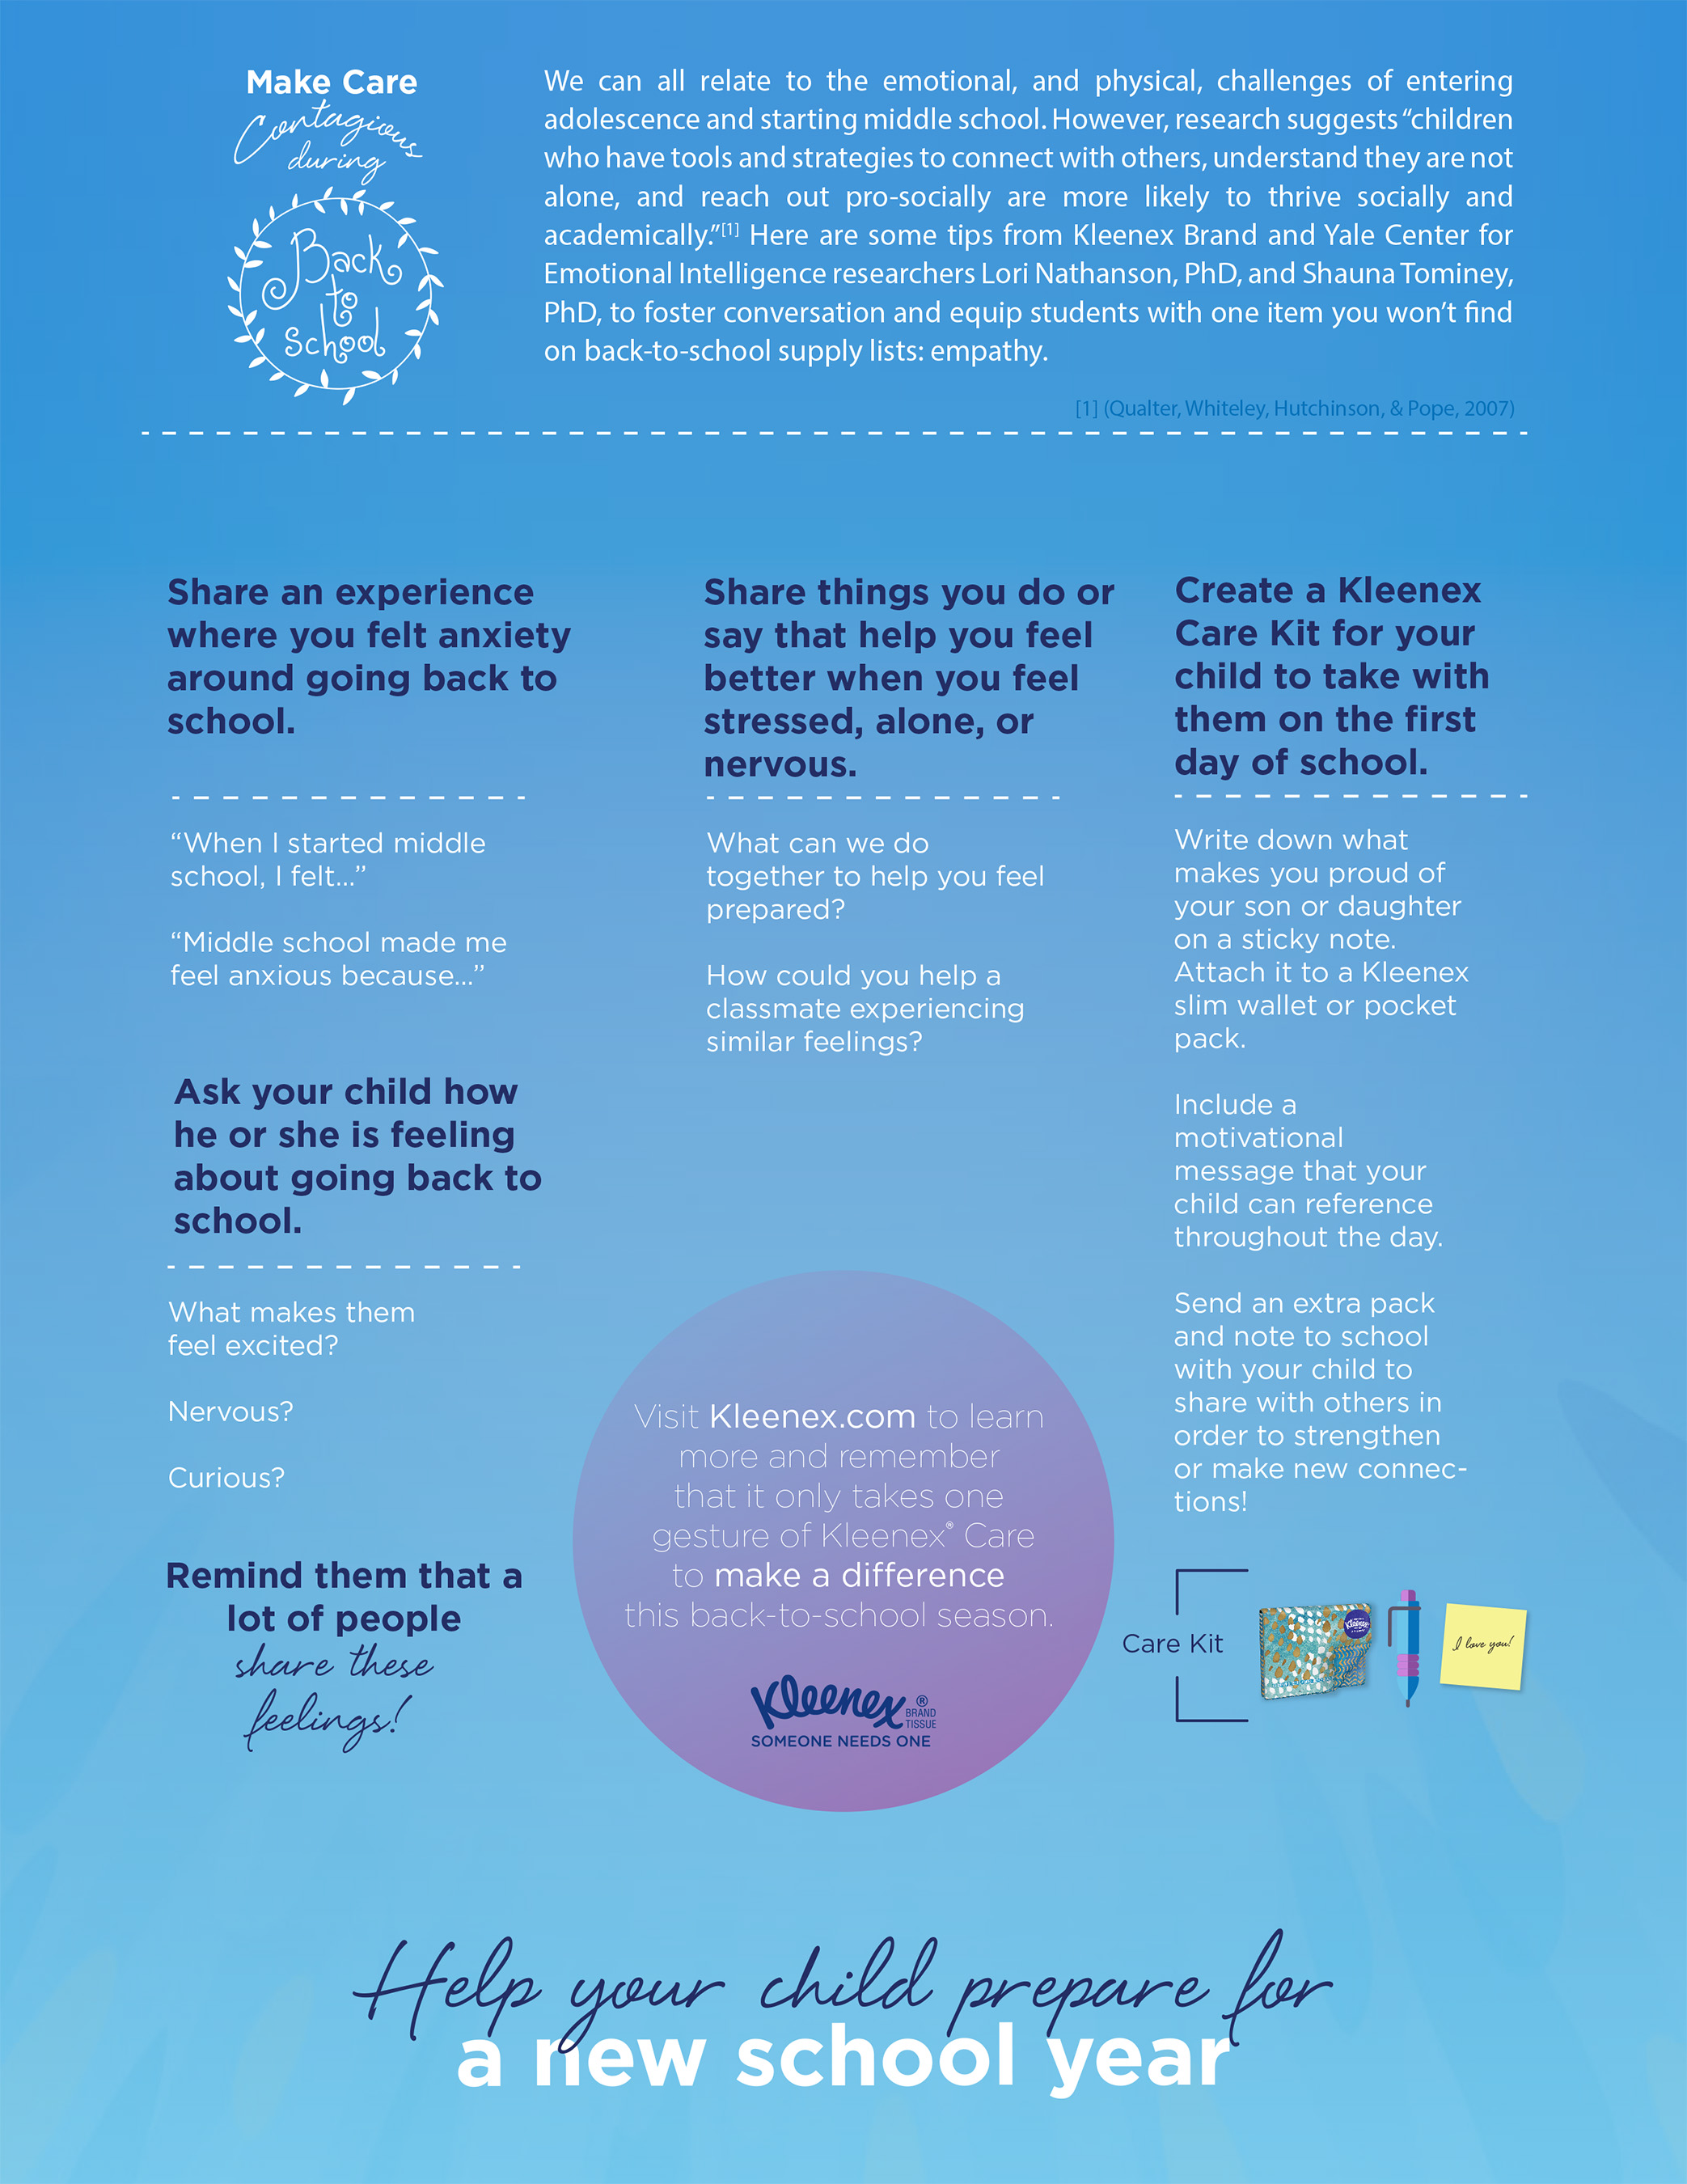 Kleenex® brand and Yale researchers share tips to help children prepare for a new school year.